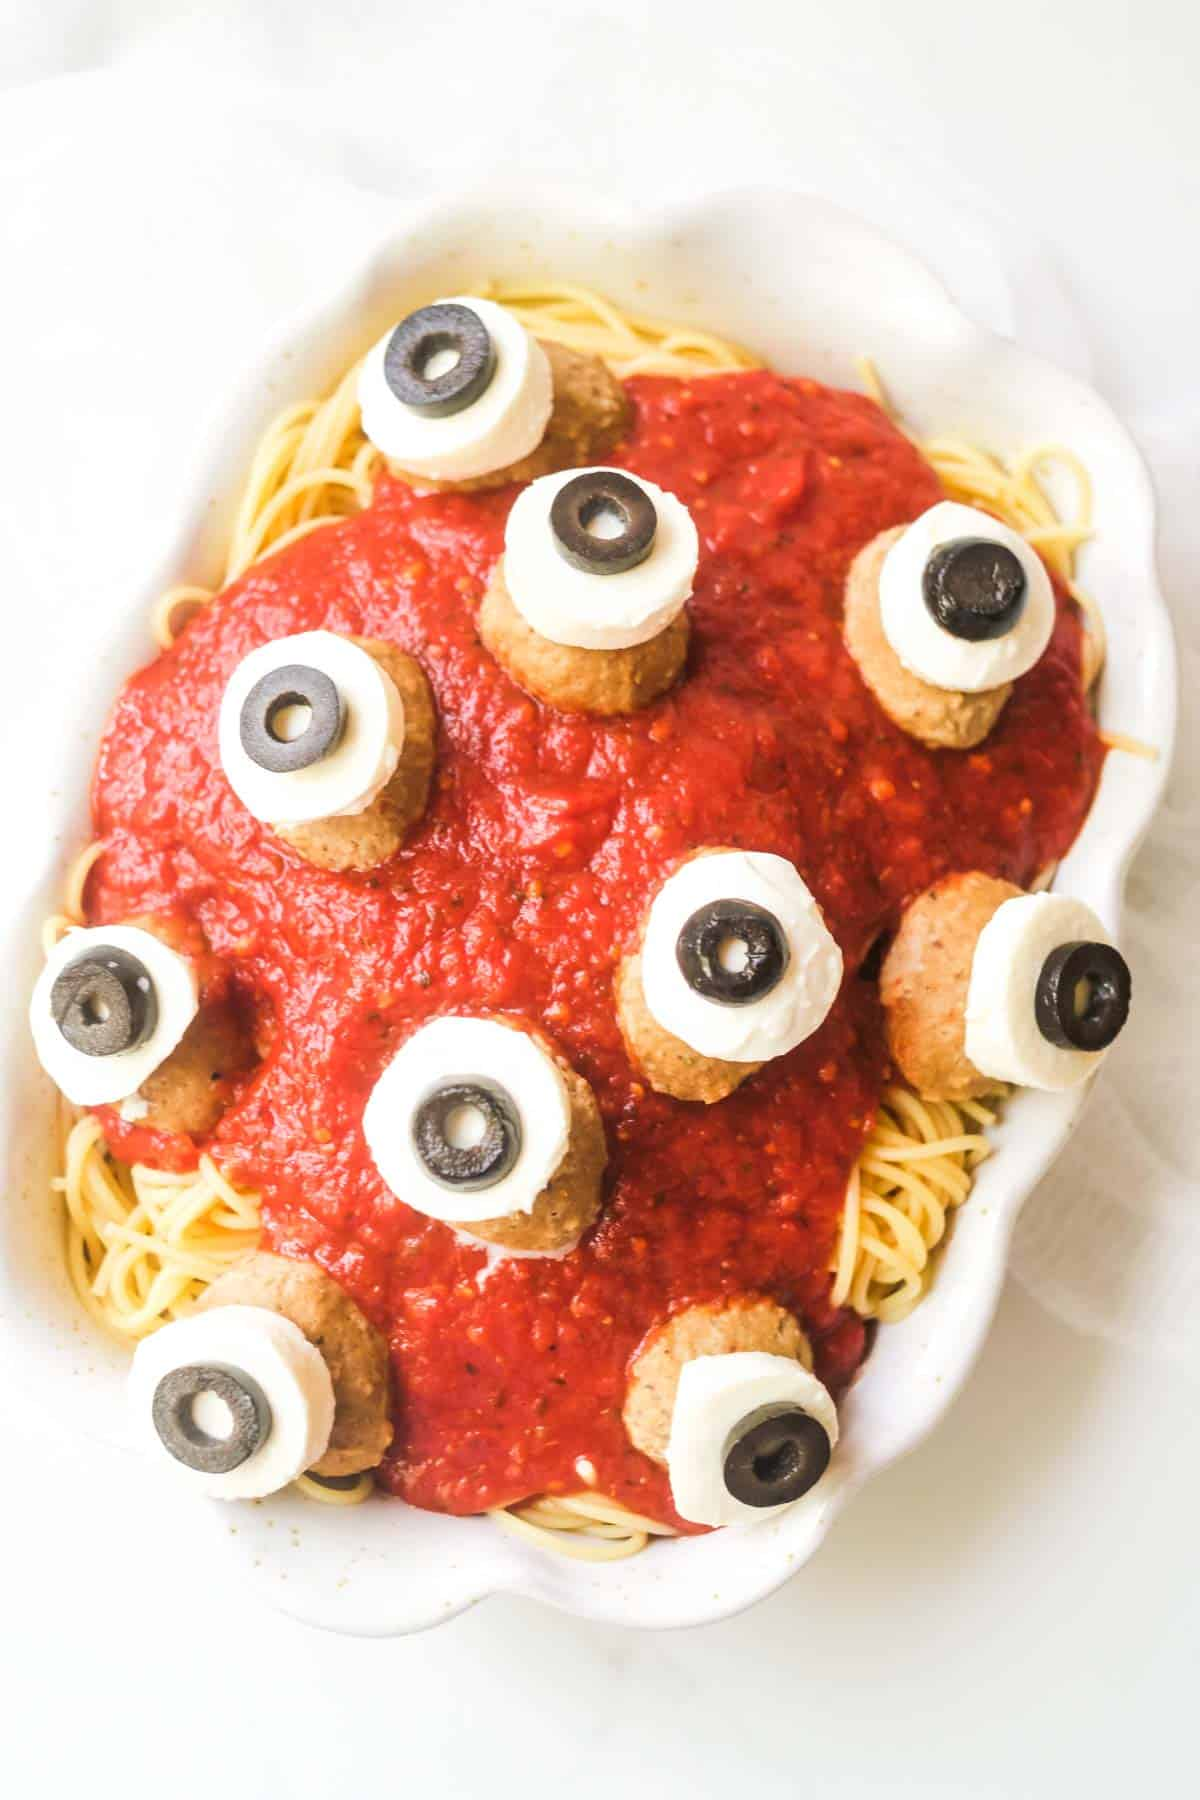 a top down view of a large bowl of spaghetti and sauce with meatballs. the meatballs are topped with white circles of cheese and black olives made to look like eyeballs